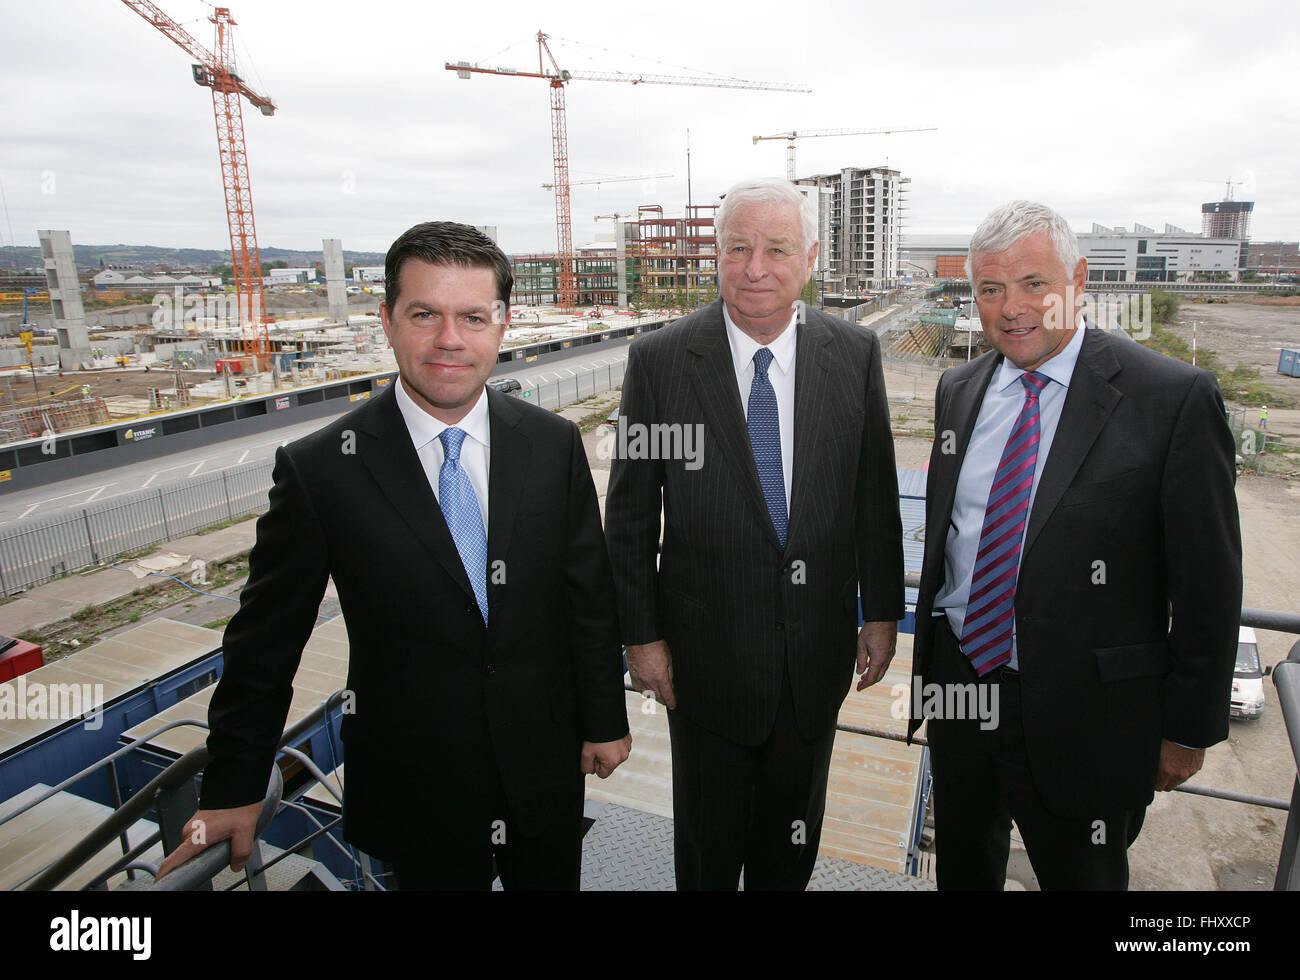 FILES - Declan Kelly (left) who has just been announced by Secretary of State Hilary Clinton as Economic Envoy to Stock Photo